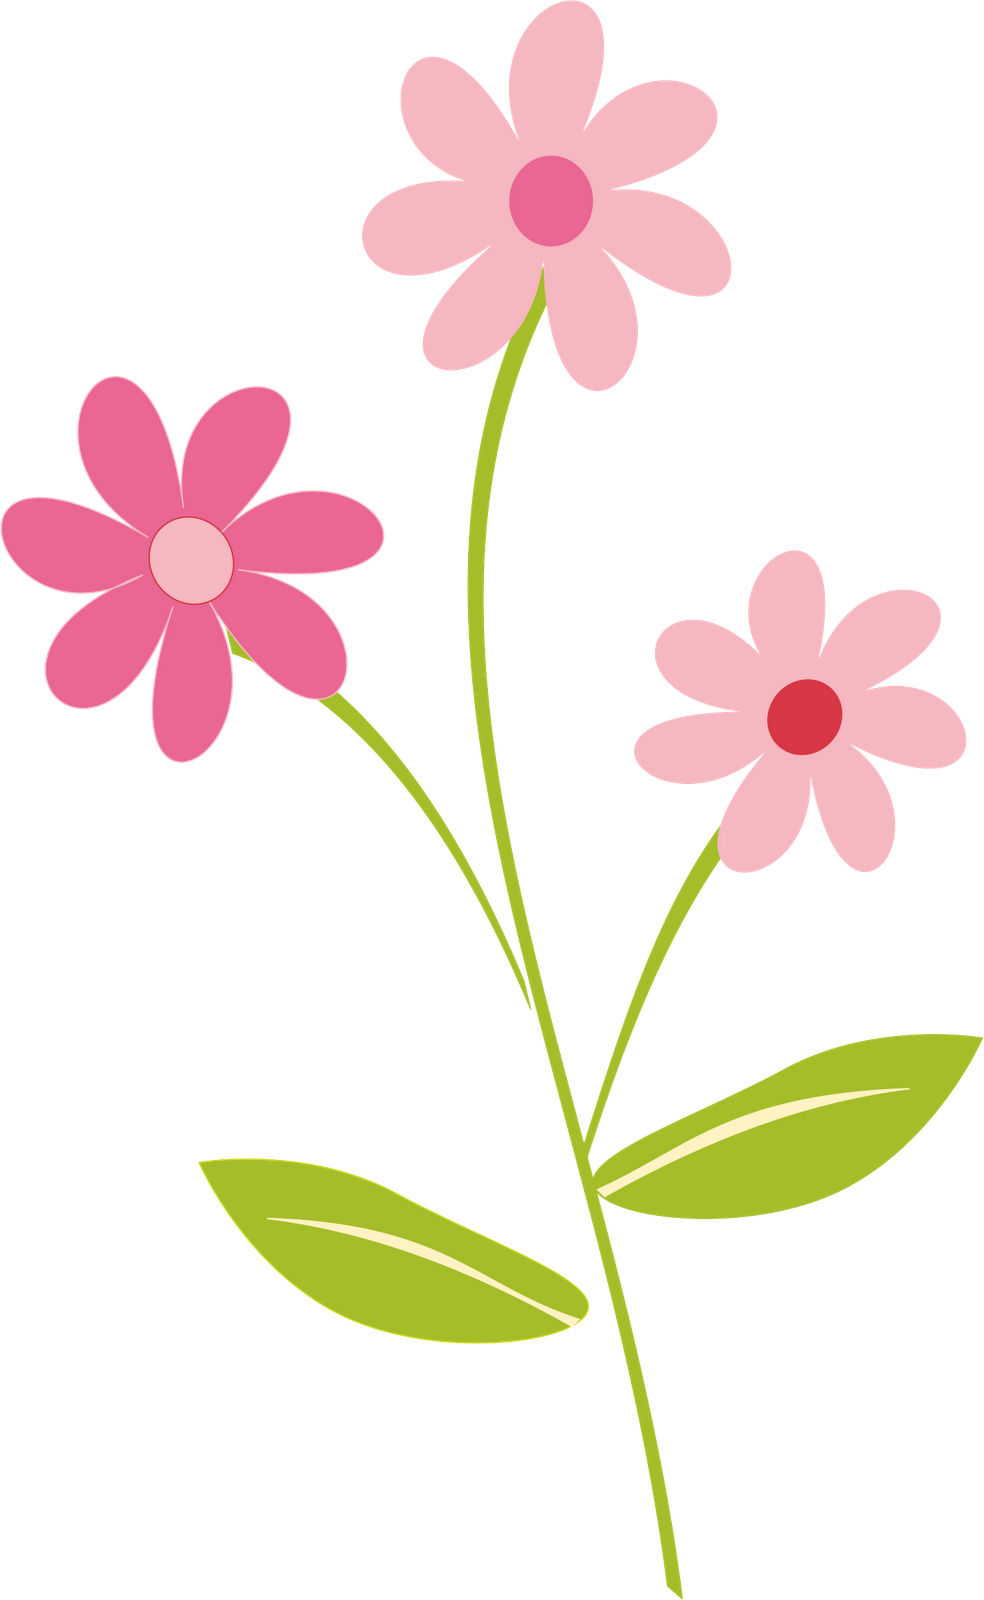 Spring flower clipart transparent picture royalty free stock Spring Flowers Clipart at GetDrawings.com | Free for personal use ... picture royalty free stock